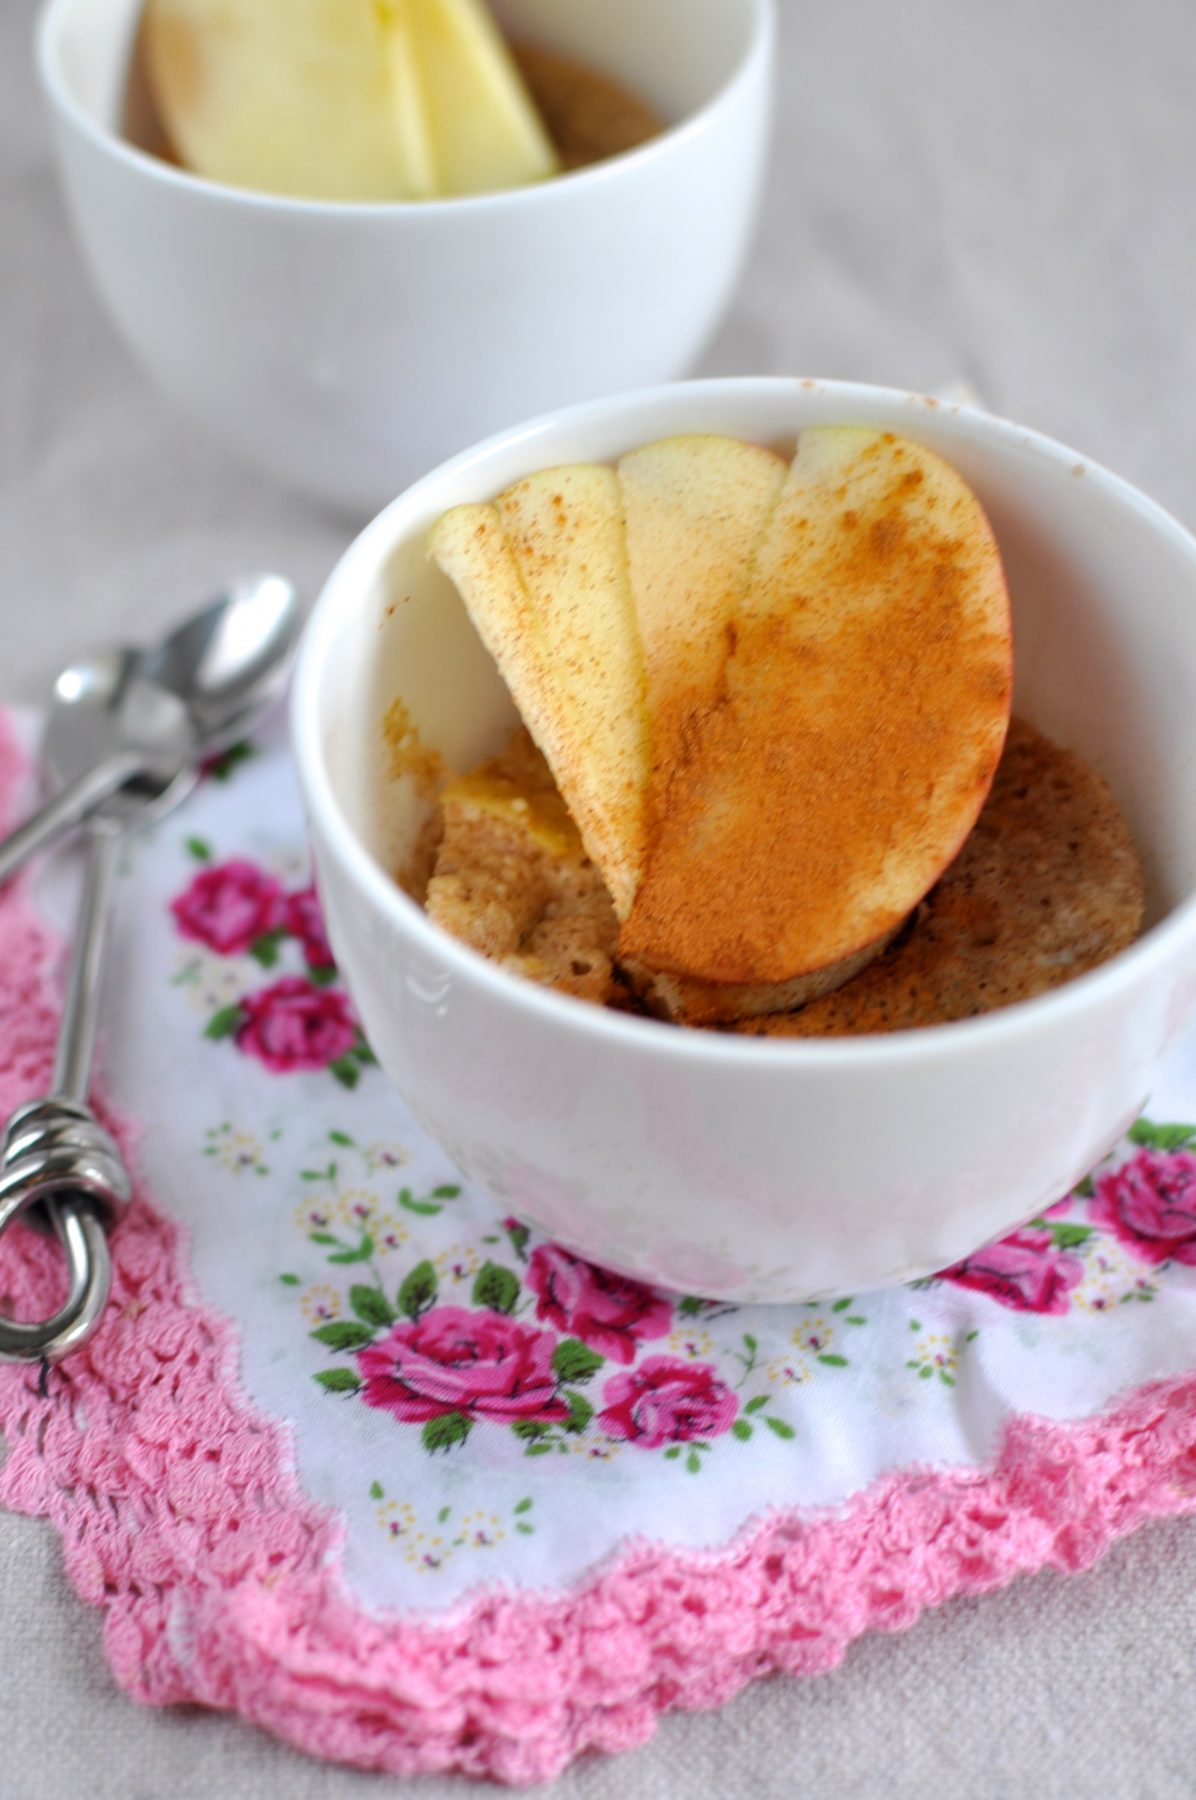 Apple and cinnamon paleo muffin